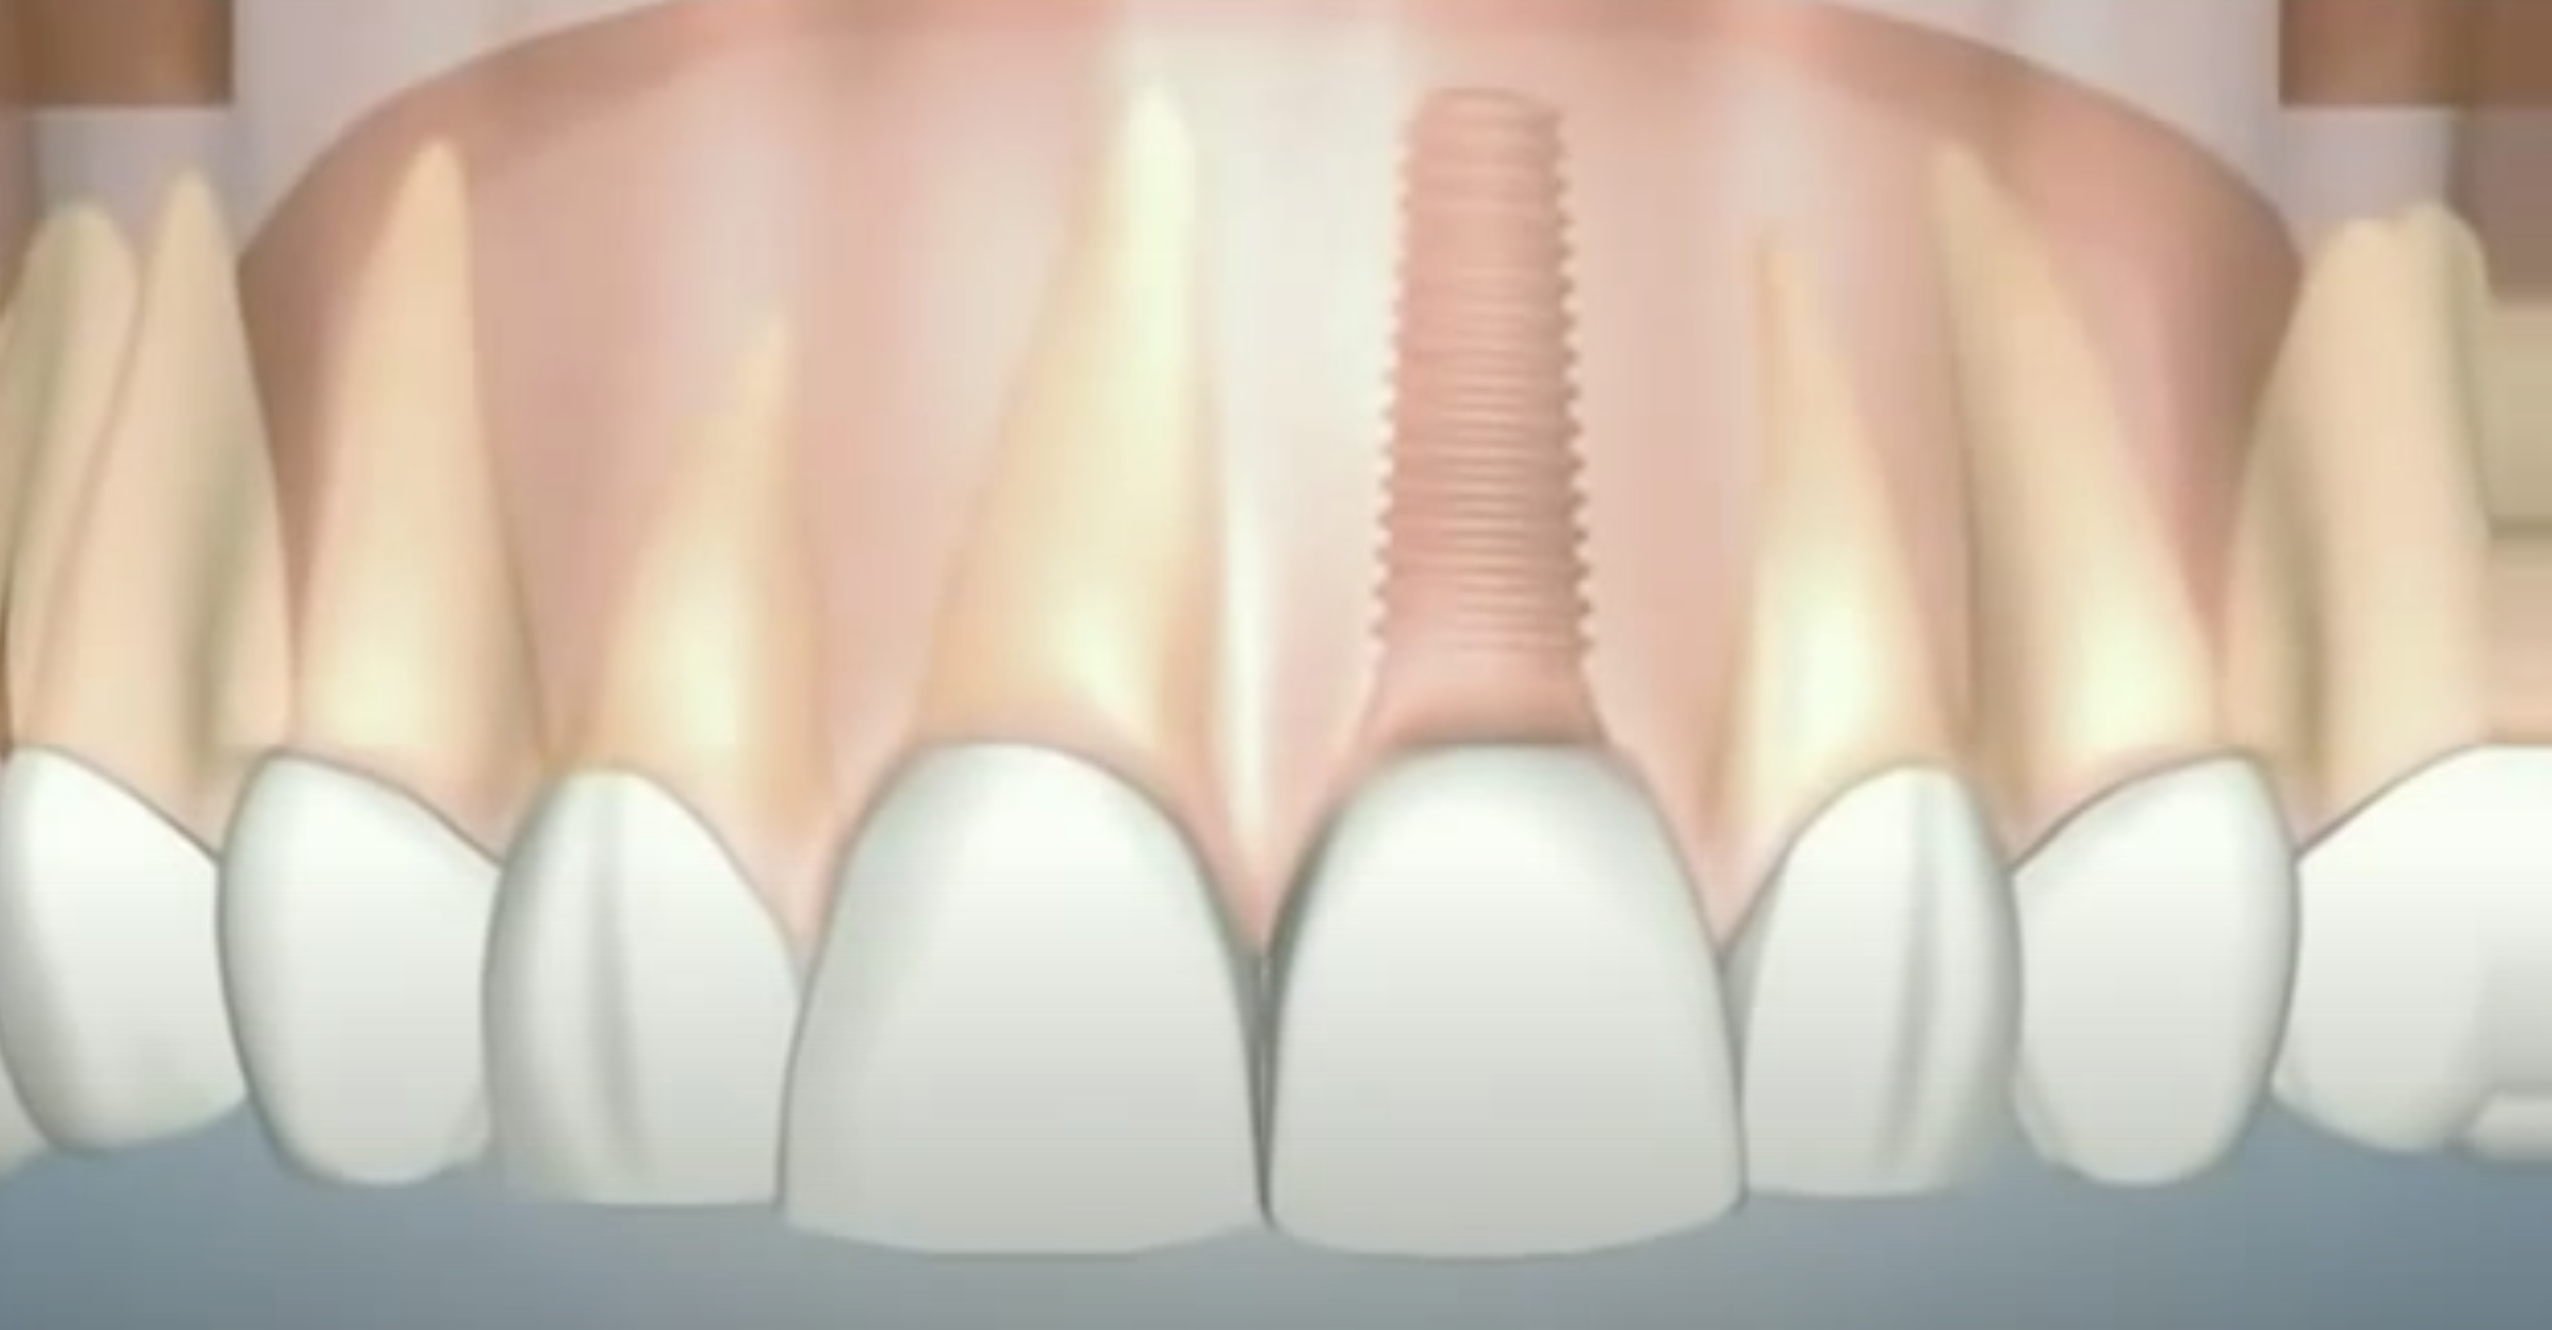 Oral Surgery & Implants